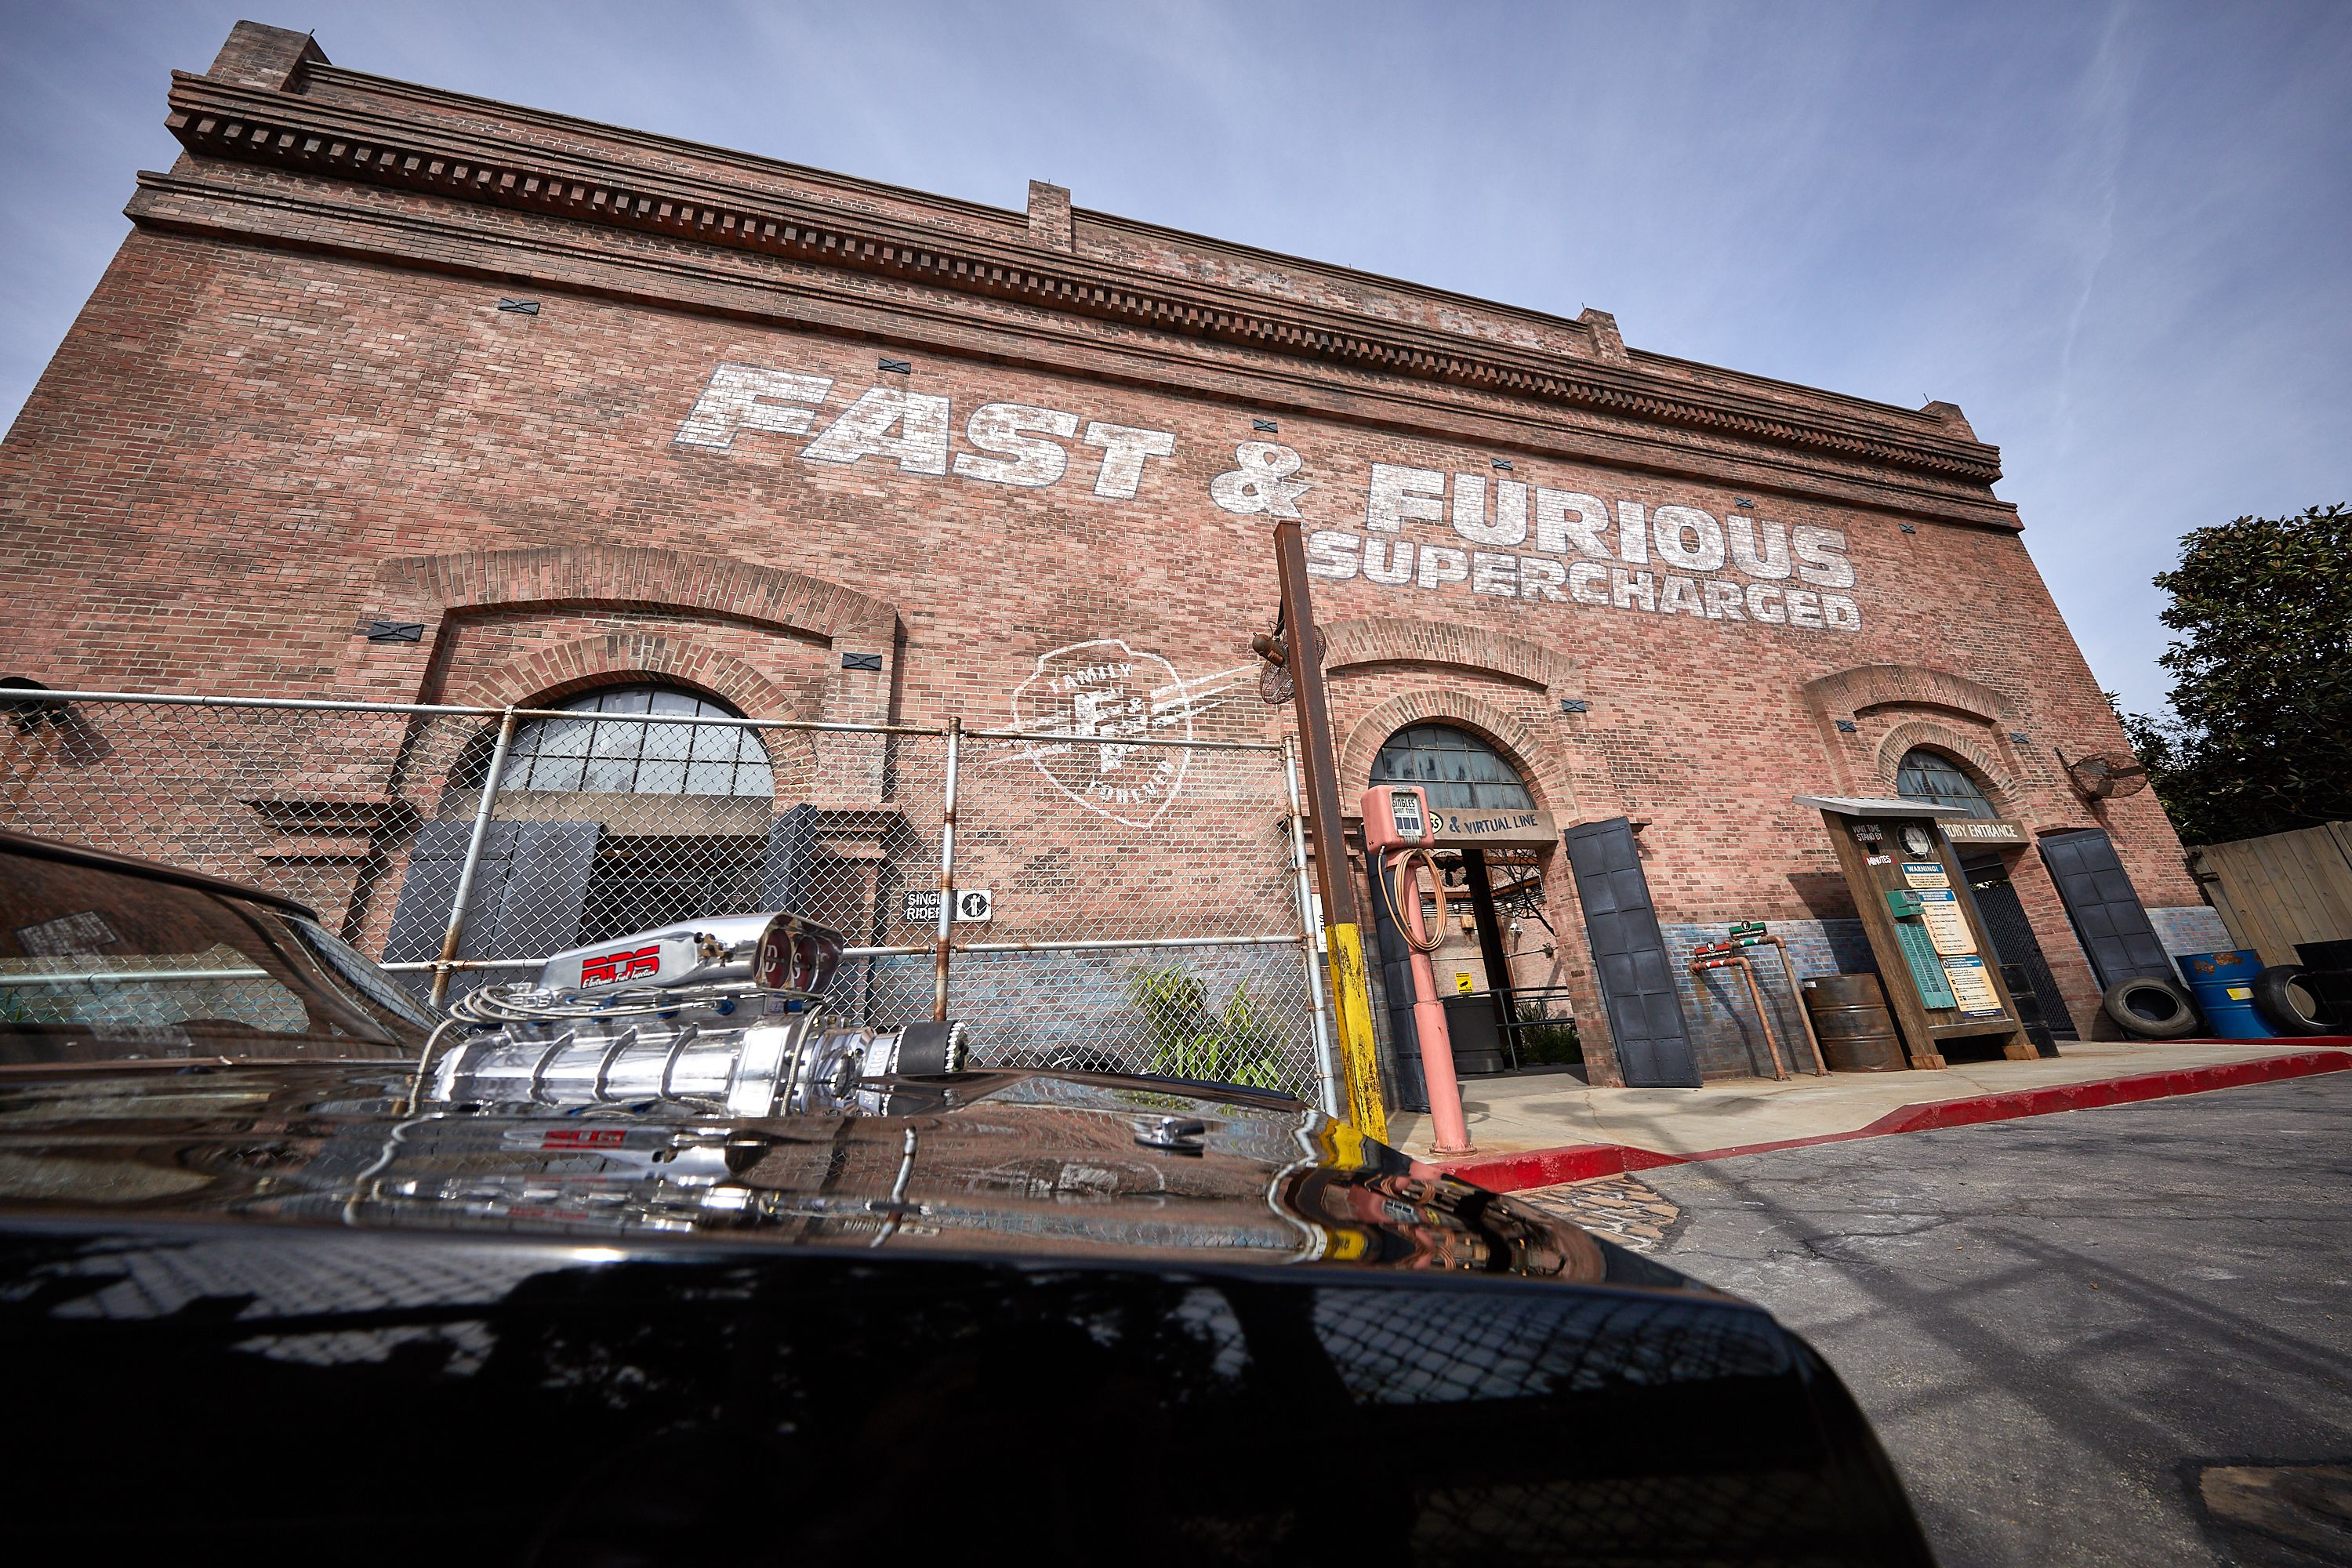 Fast & Furious - Supercharged Ride Now Open at Universal